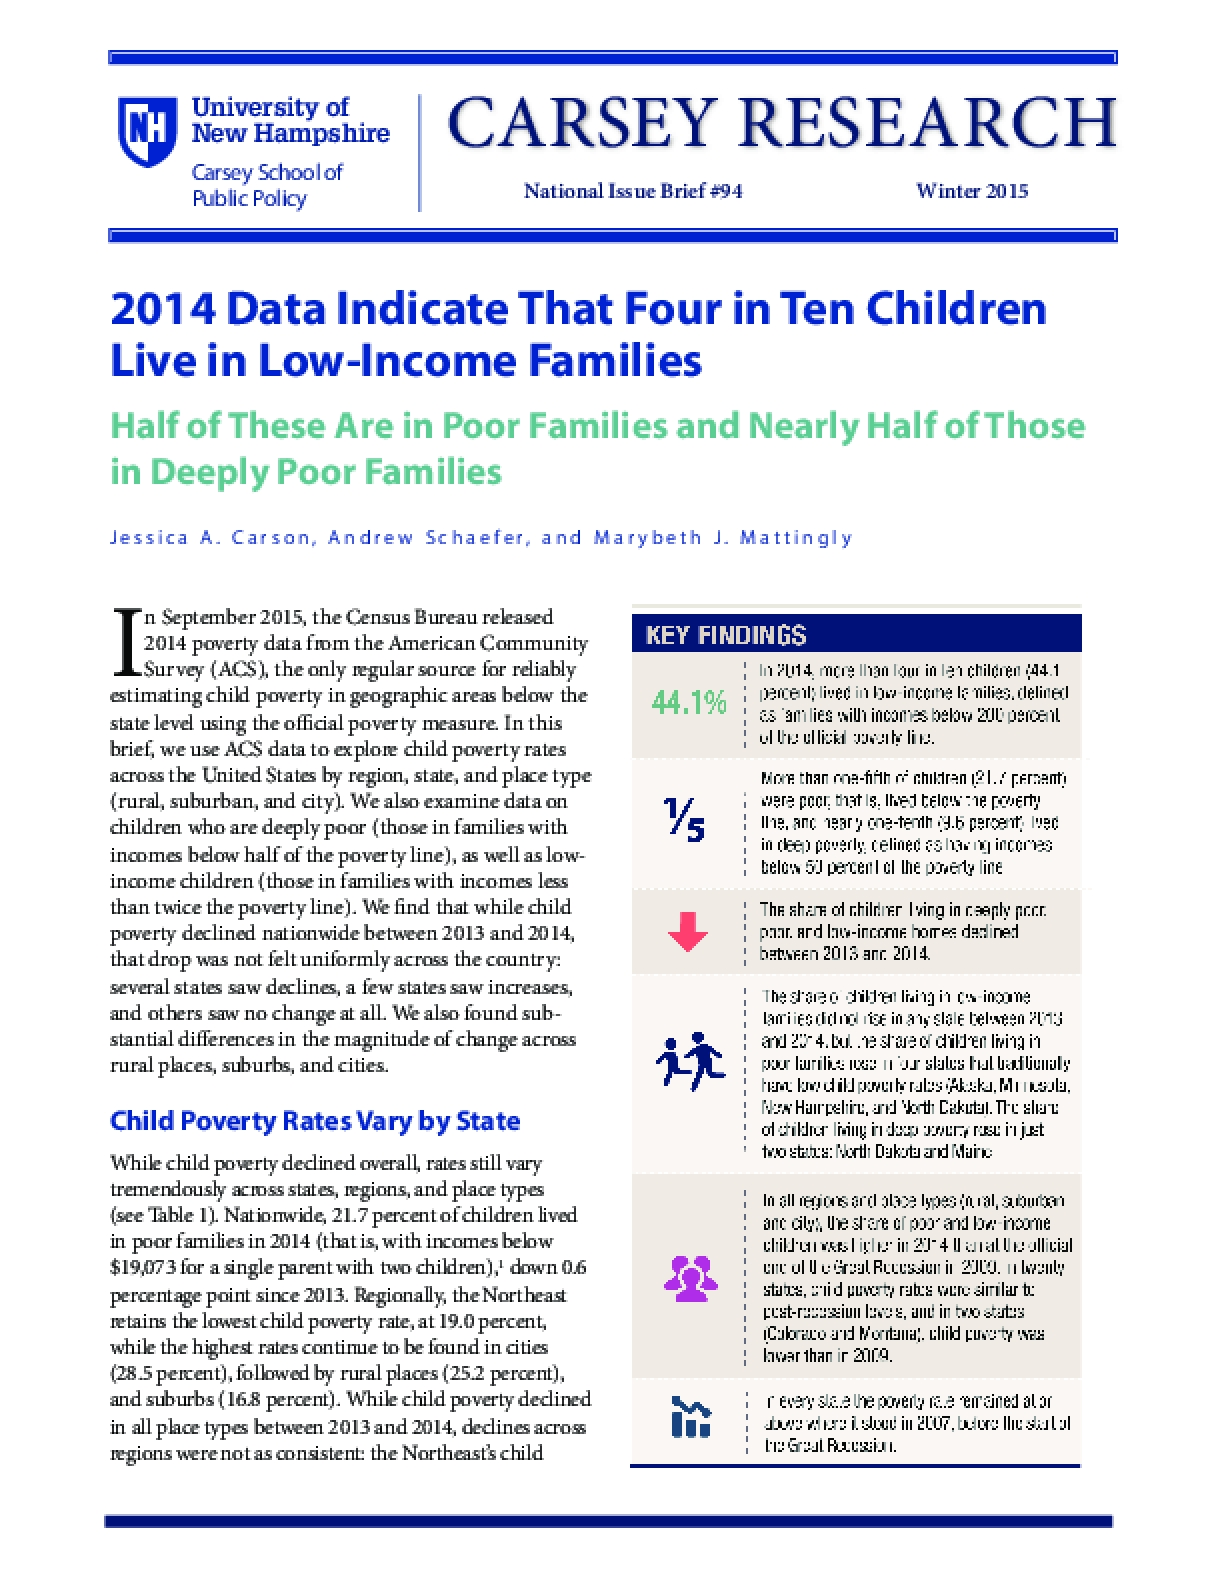 2014 Data Indicate That Four in Ten Children Live in Low-Income Families